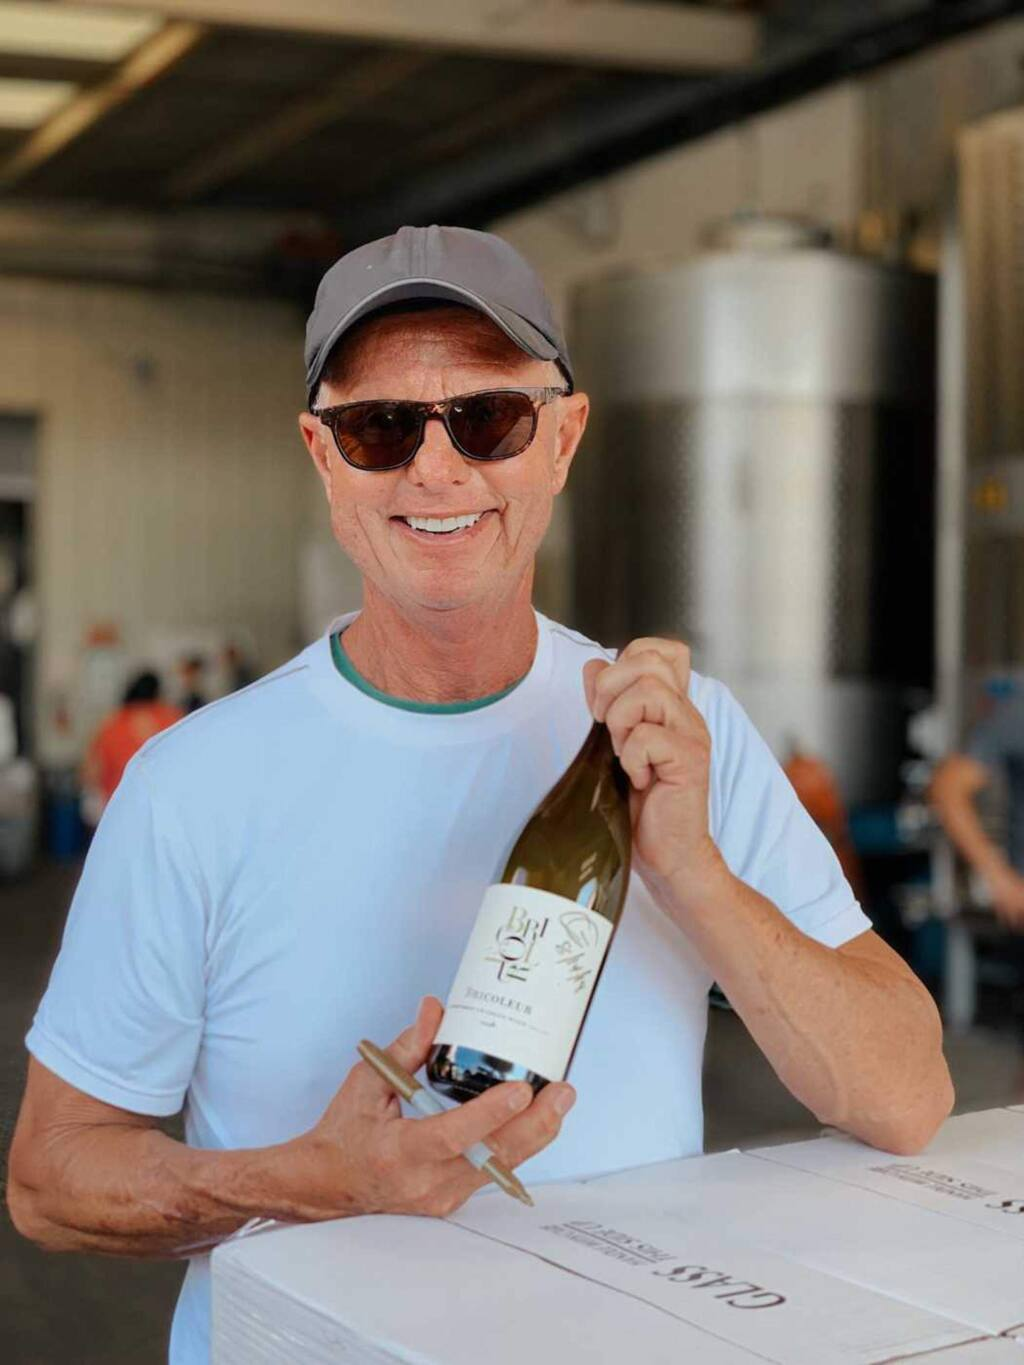 Cary Gott is the fourth generation in a family of California winemakers. Now Gott consults for wineries such as Davis Estates and Lawer Estates in Calistoga and makes wine at Bricoleur Vineyards. (bricoleurvineyards.com)